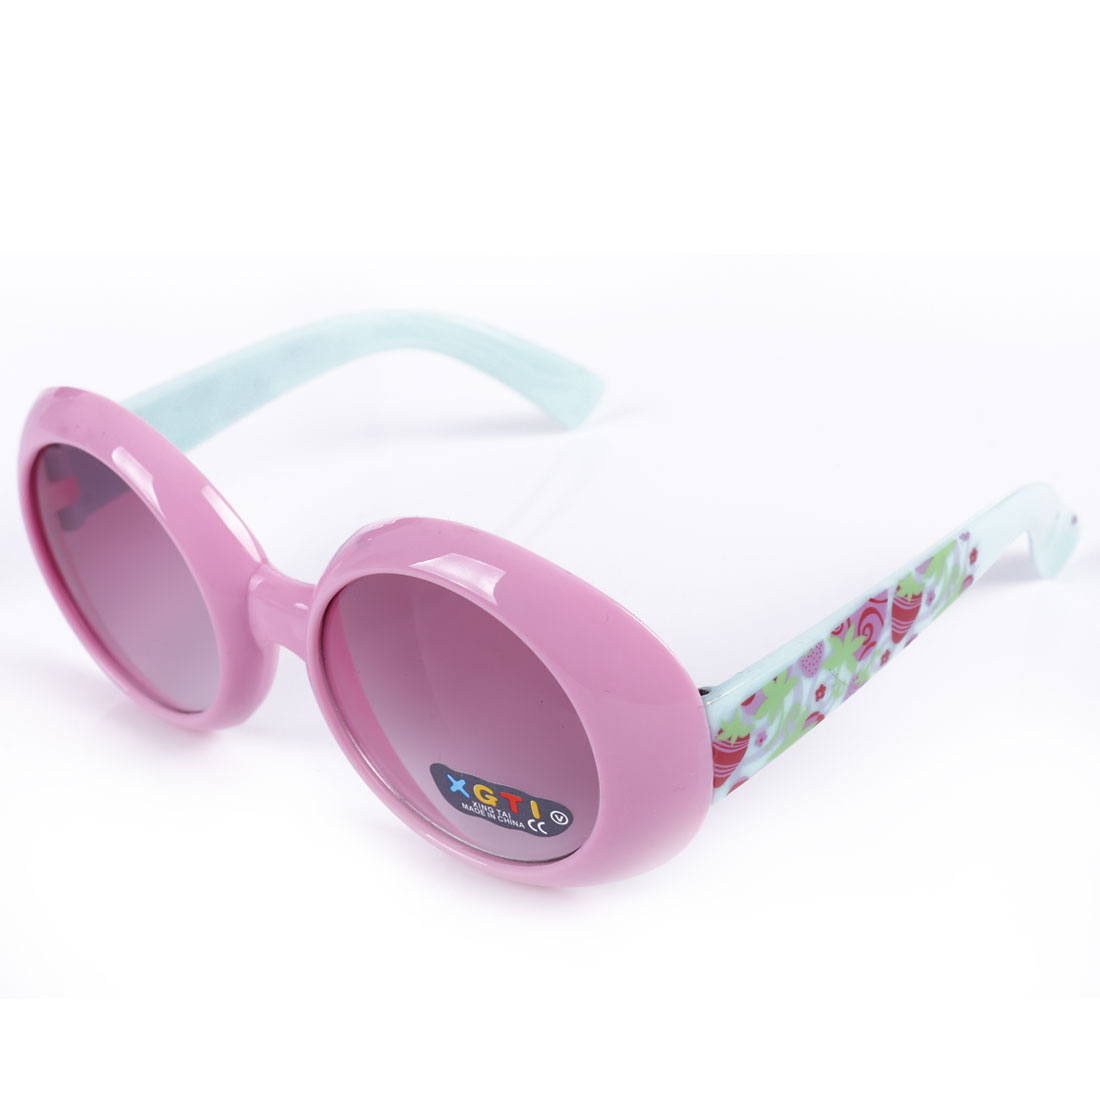 Mauvelous Plastic Full Frame Single Bridge Sunglasses for Children